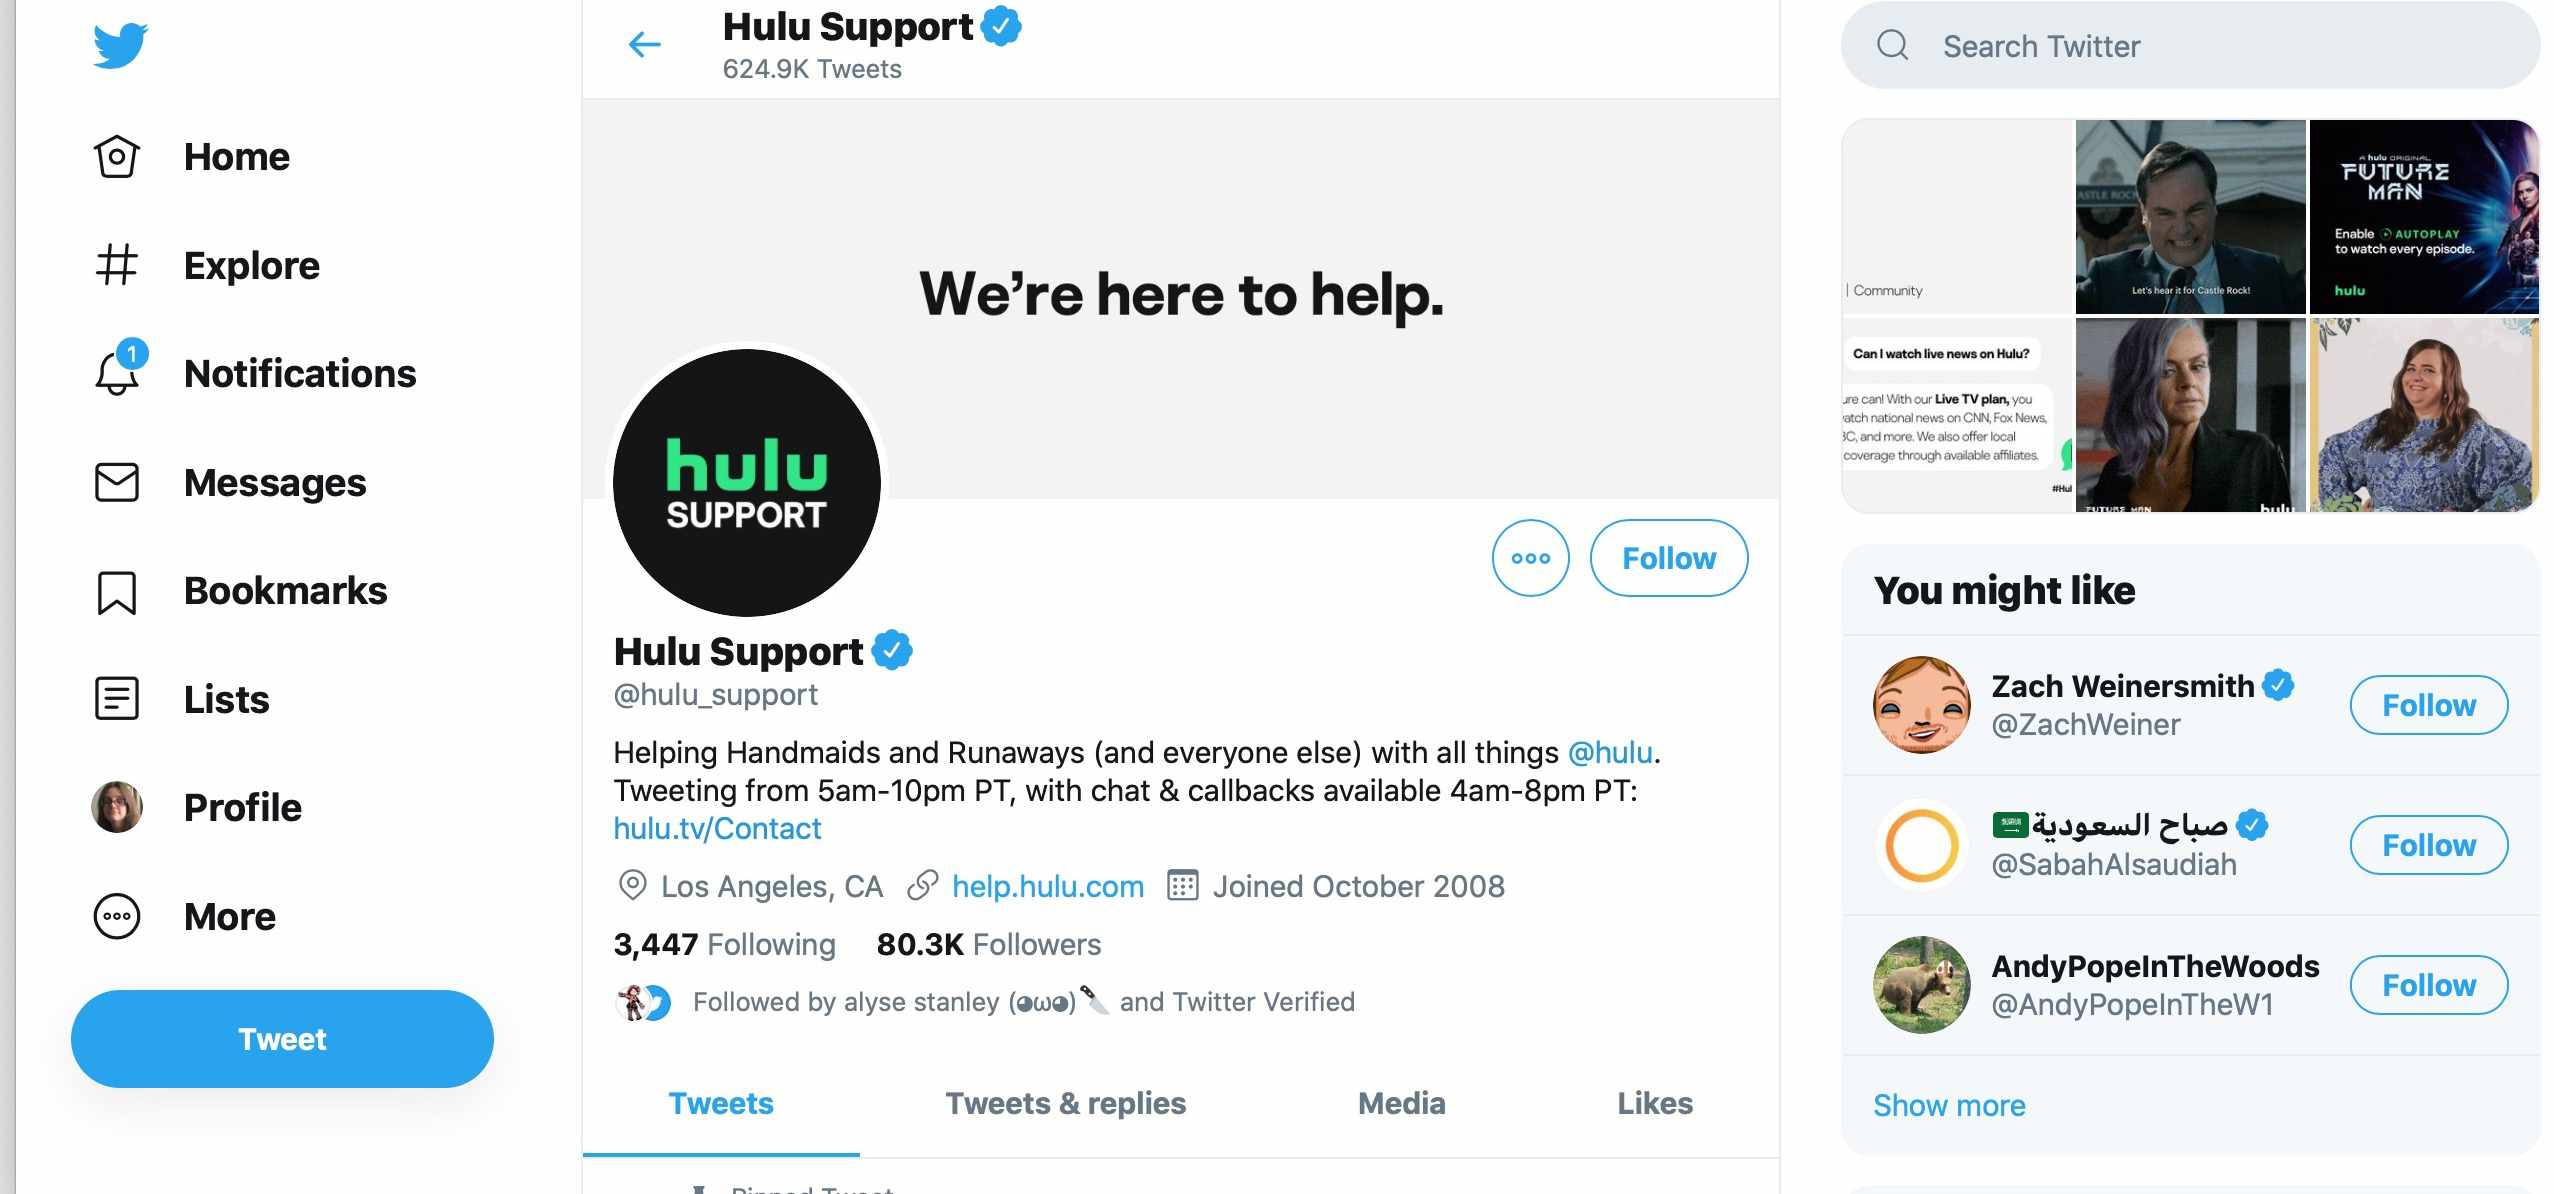 Hulu Support Twitter account page